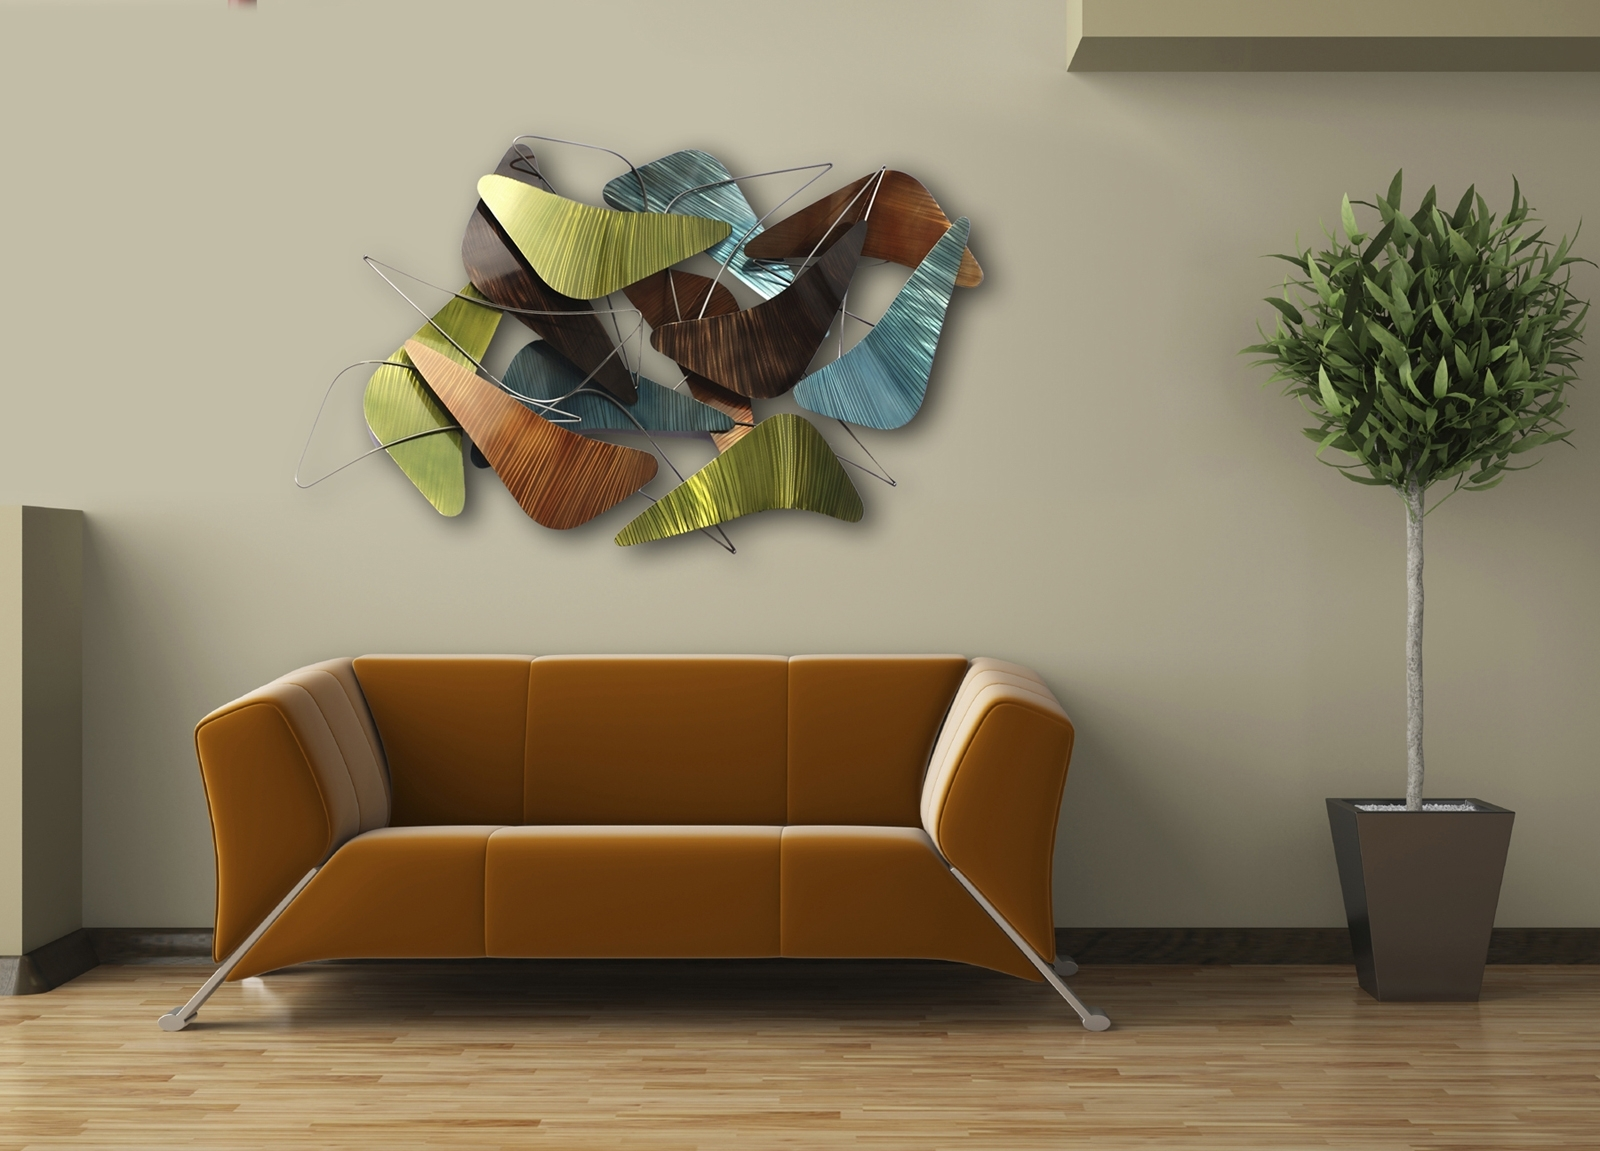 Well Known Contemporary Art For Home, Contemporary Wall Art Design Ideas Intended For Contemporary Wall Art (View 13 of 15)